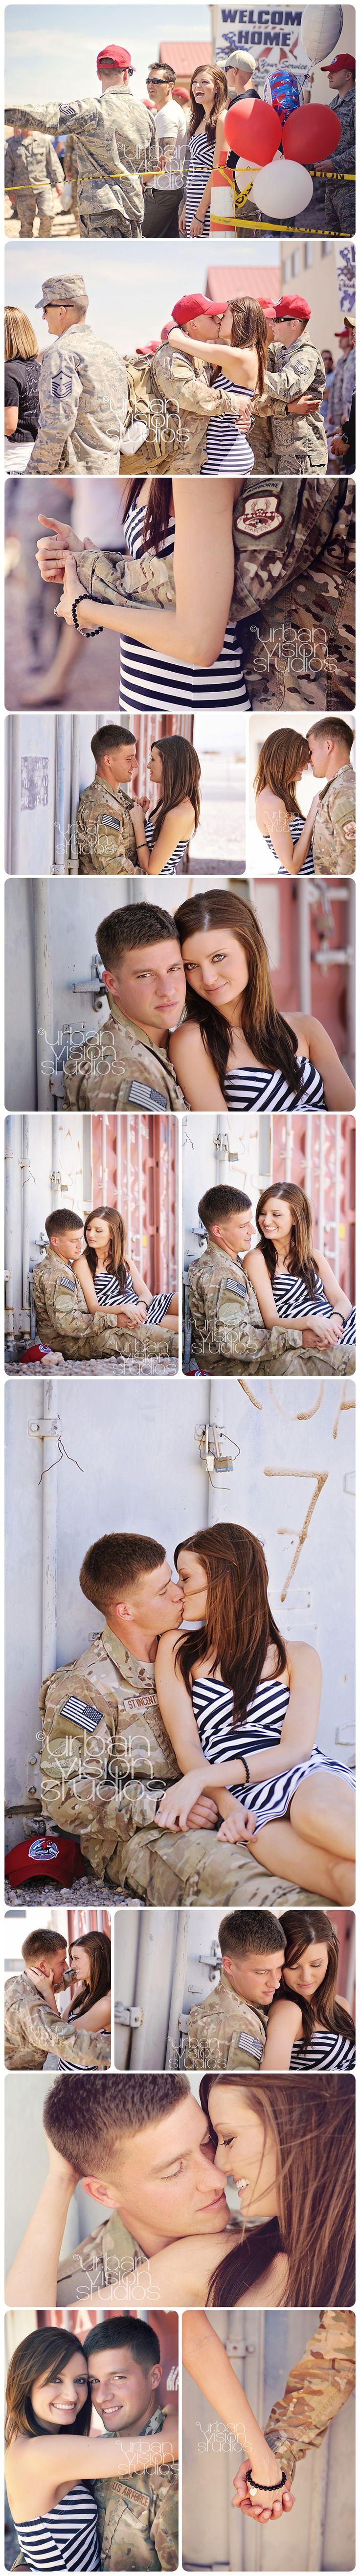 Coming home! | deployment homecoming | urban vision studios » Urban Vision Studios